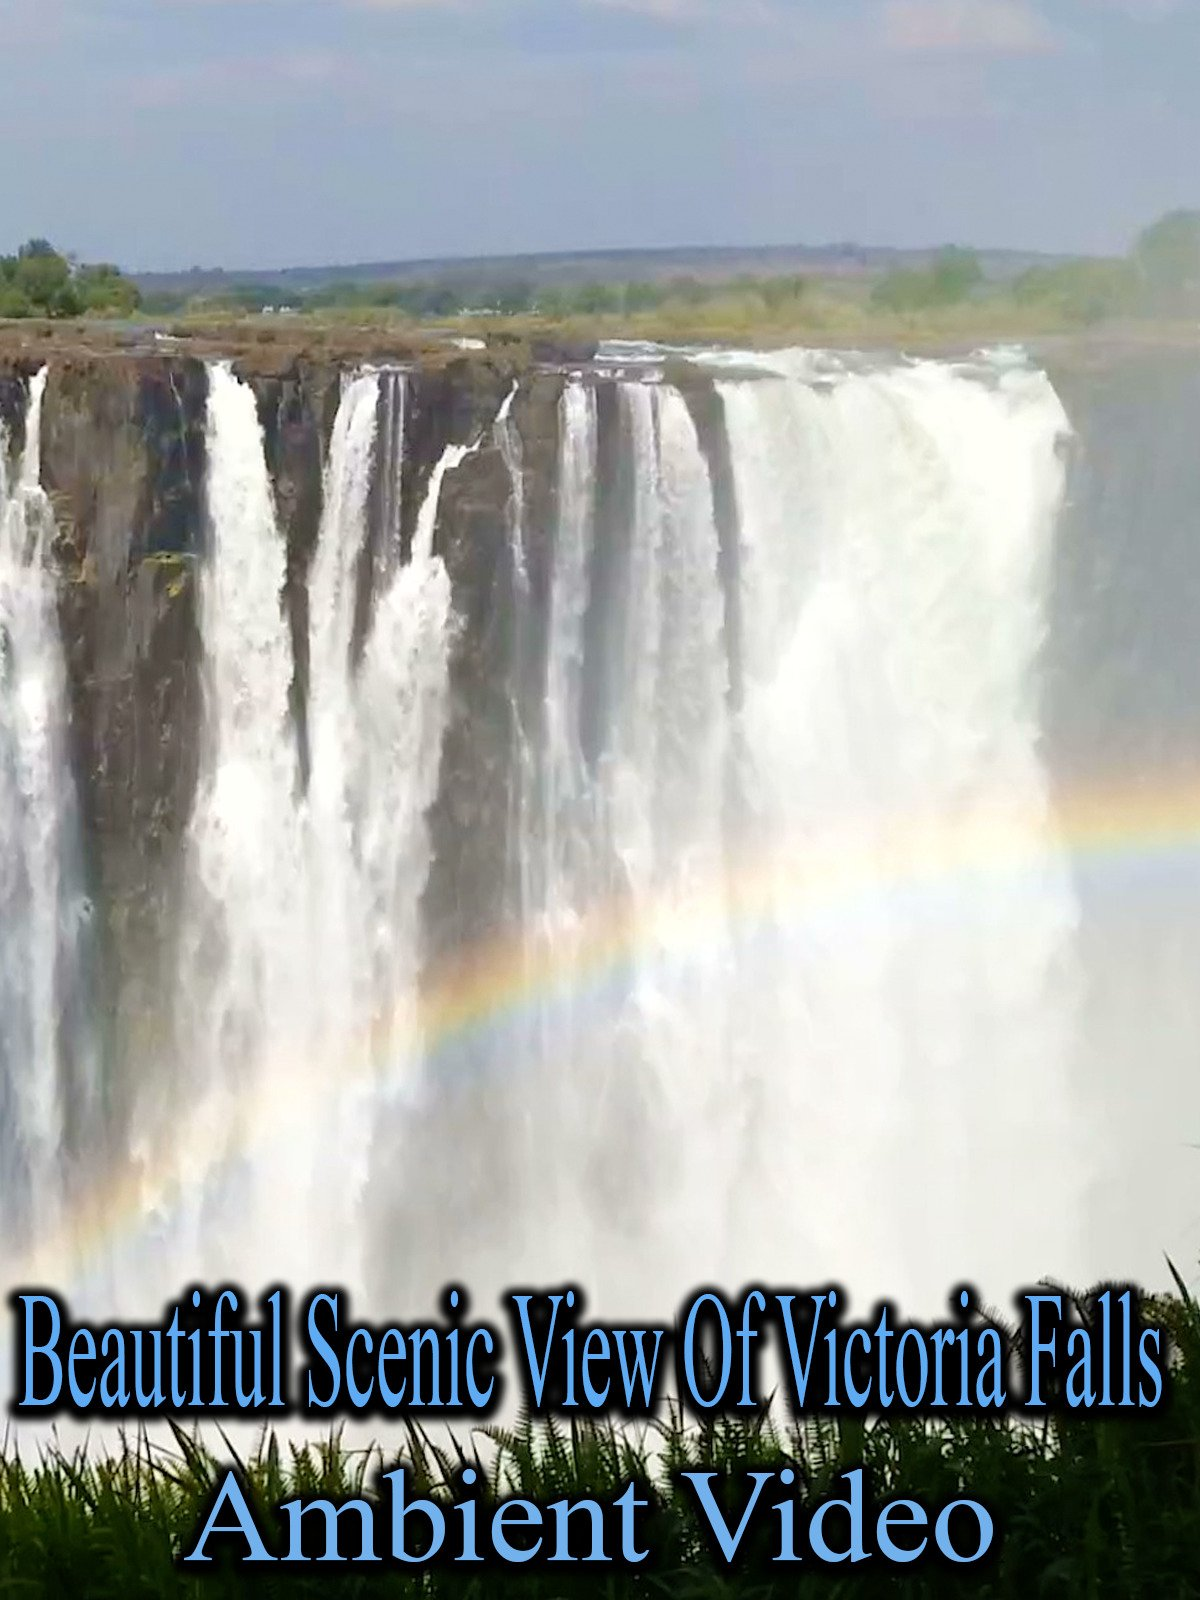 Beautiful Scenic View of Victoria Falls Ambient Video